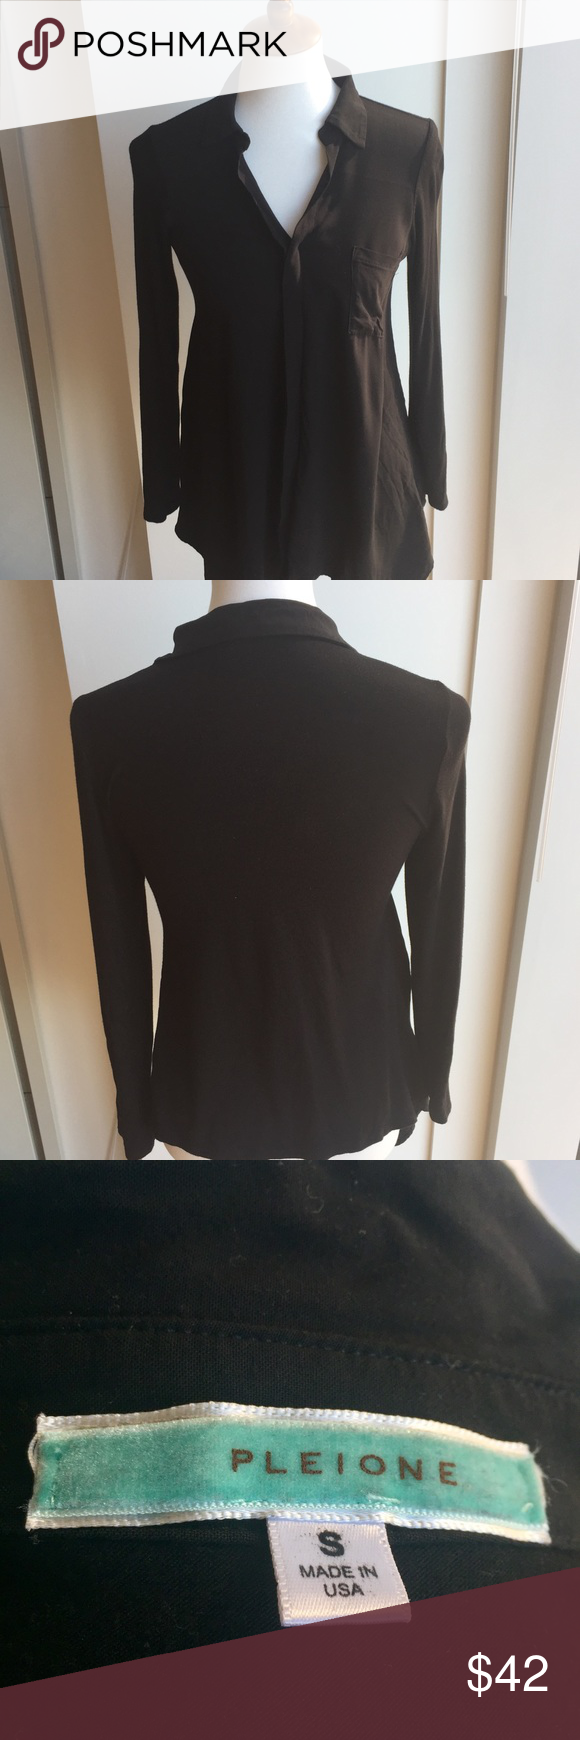 Pleione Black Blouse Pleione blouse - worn once - one pocket - rolled tab sleeves with collar - drapes nicely - very soft Pleione Tops Blouses